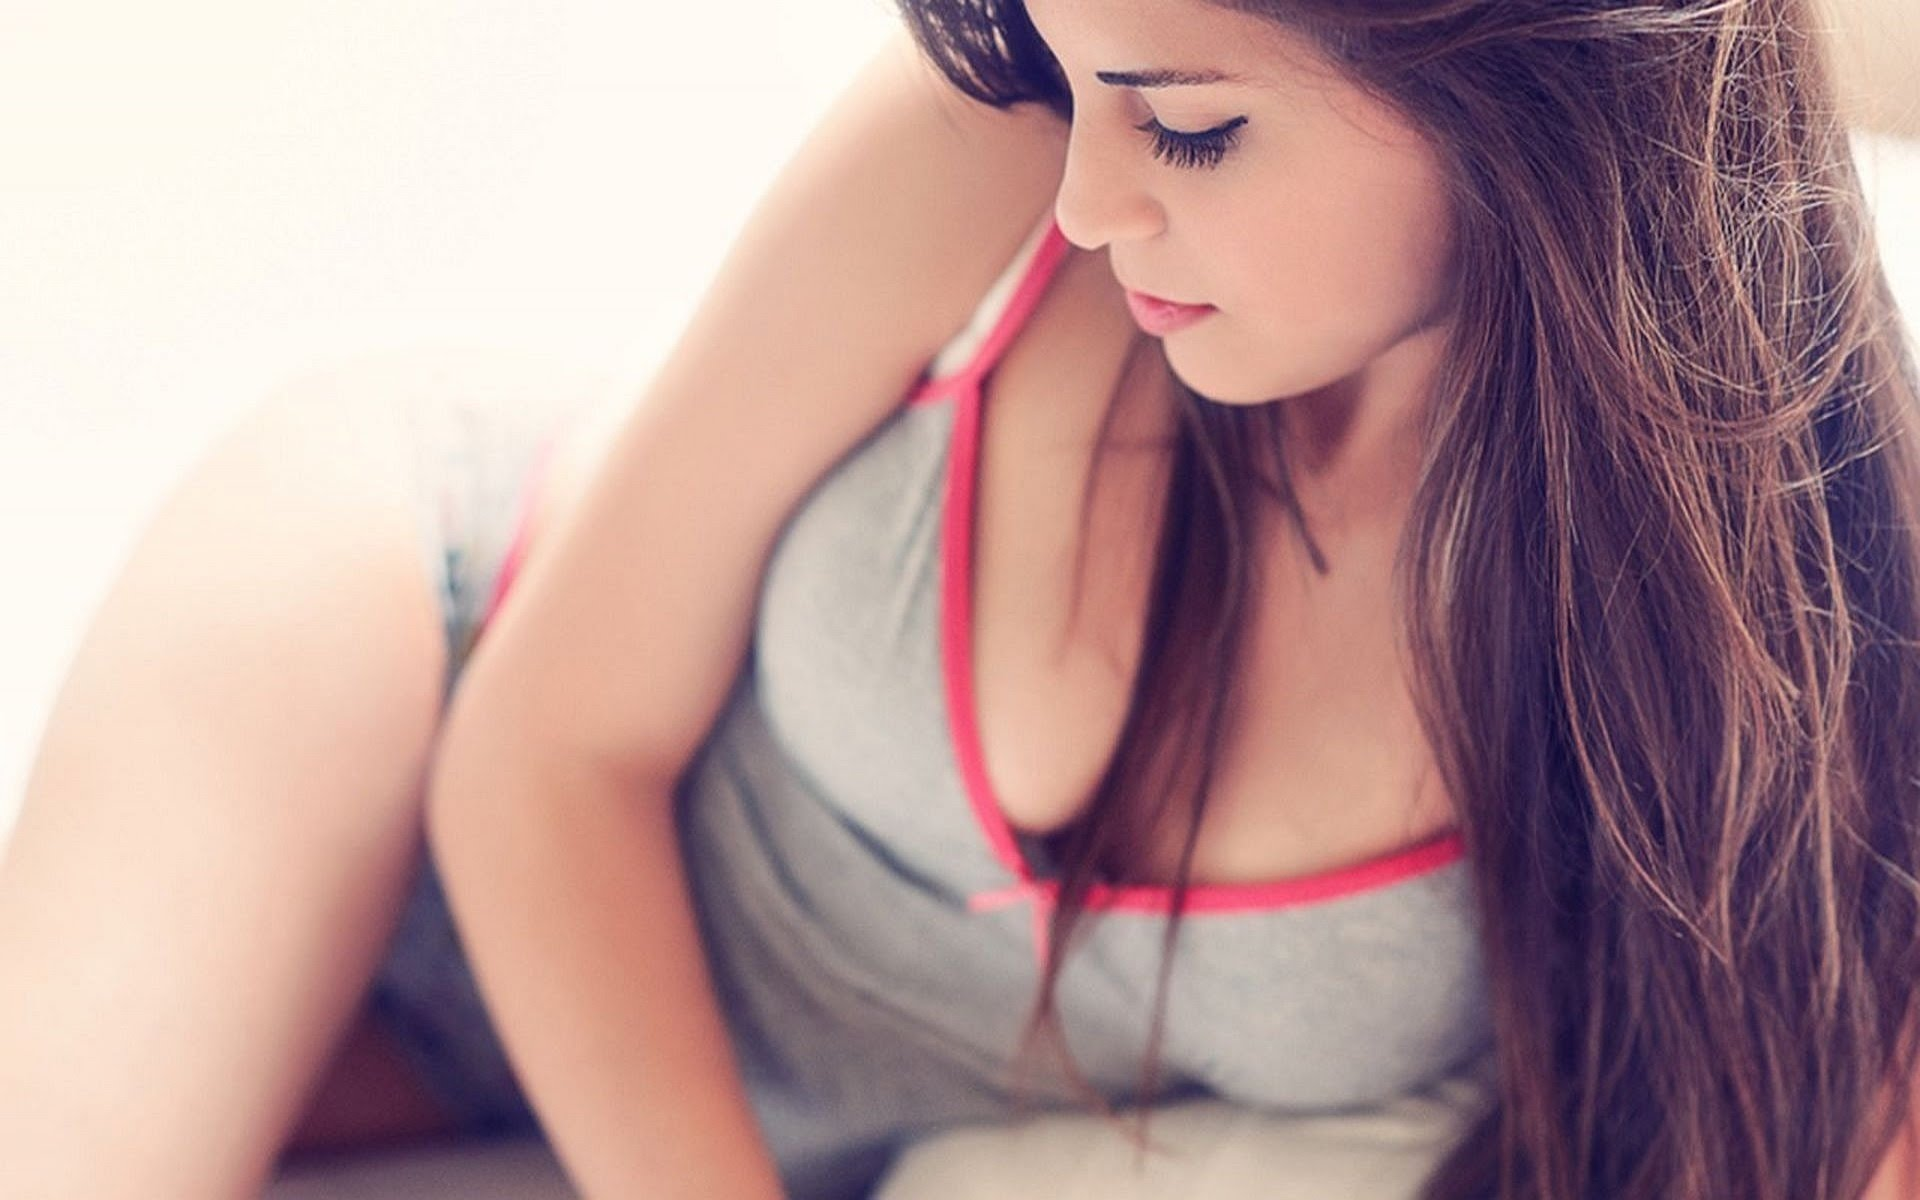 Casual sex hookup sites